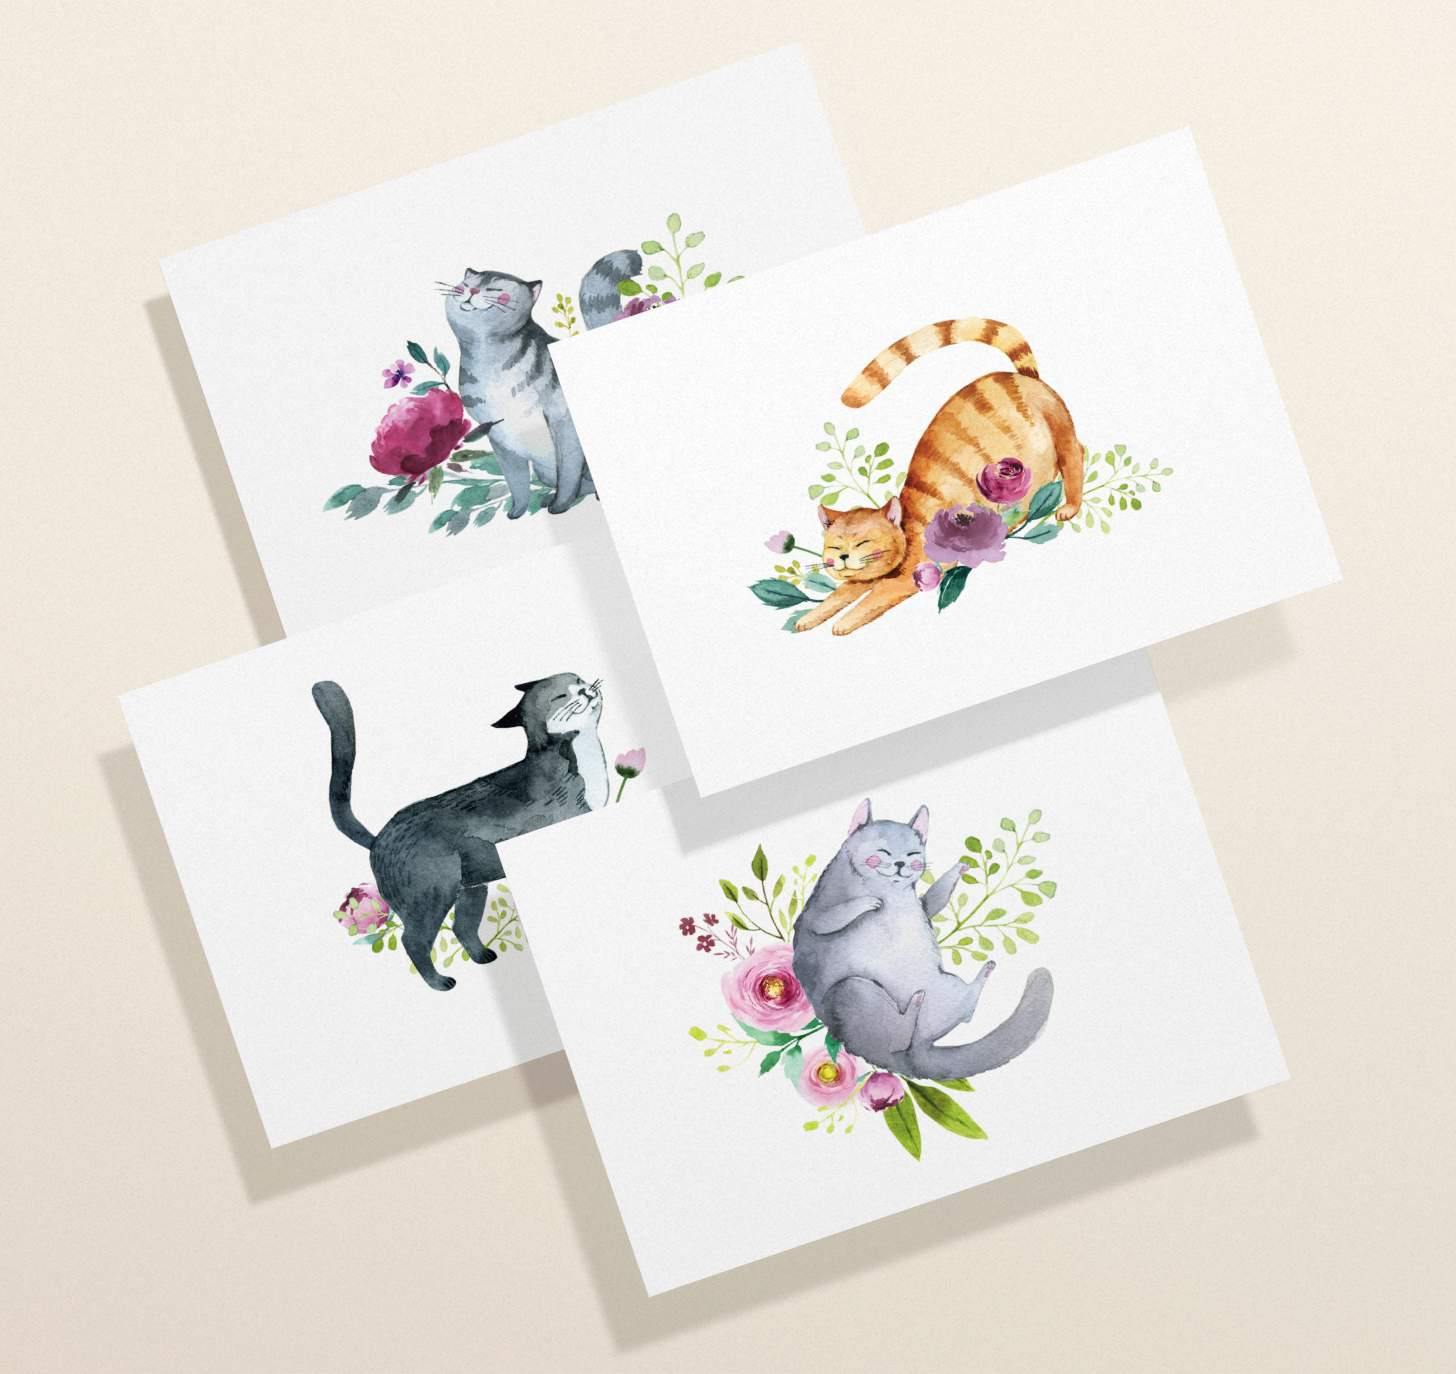 Four overlapping cards with gray, orange, black, and gray striped cat designs with flowers